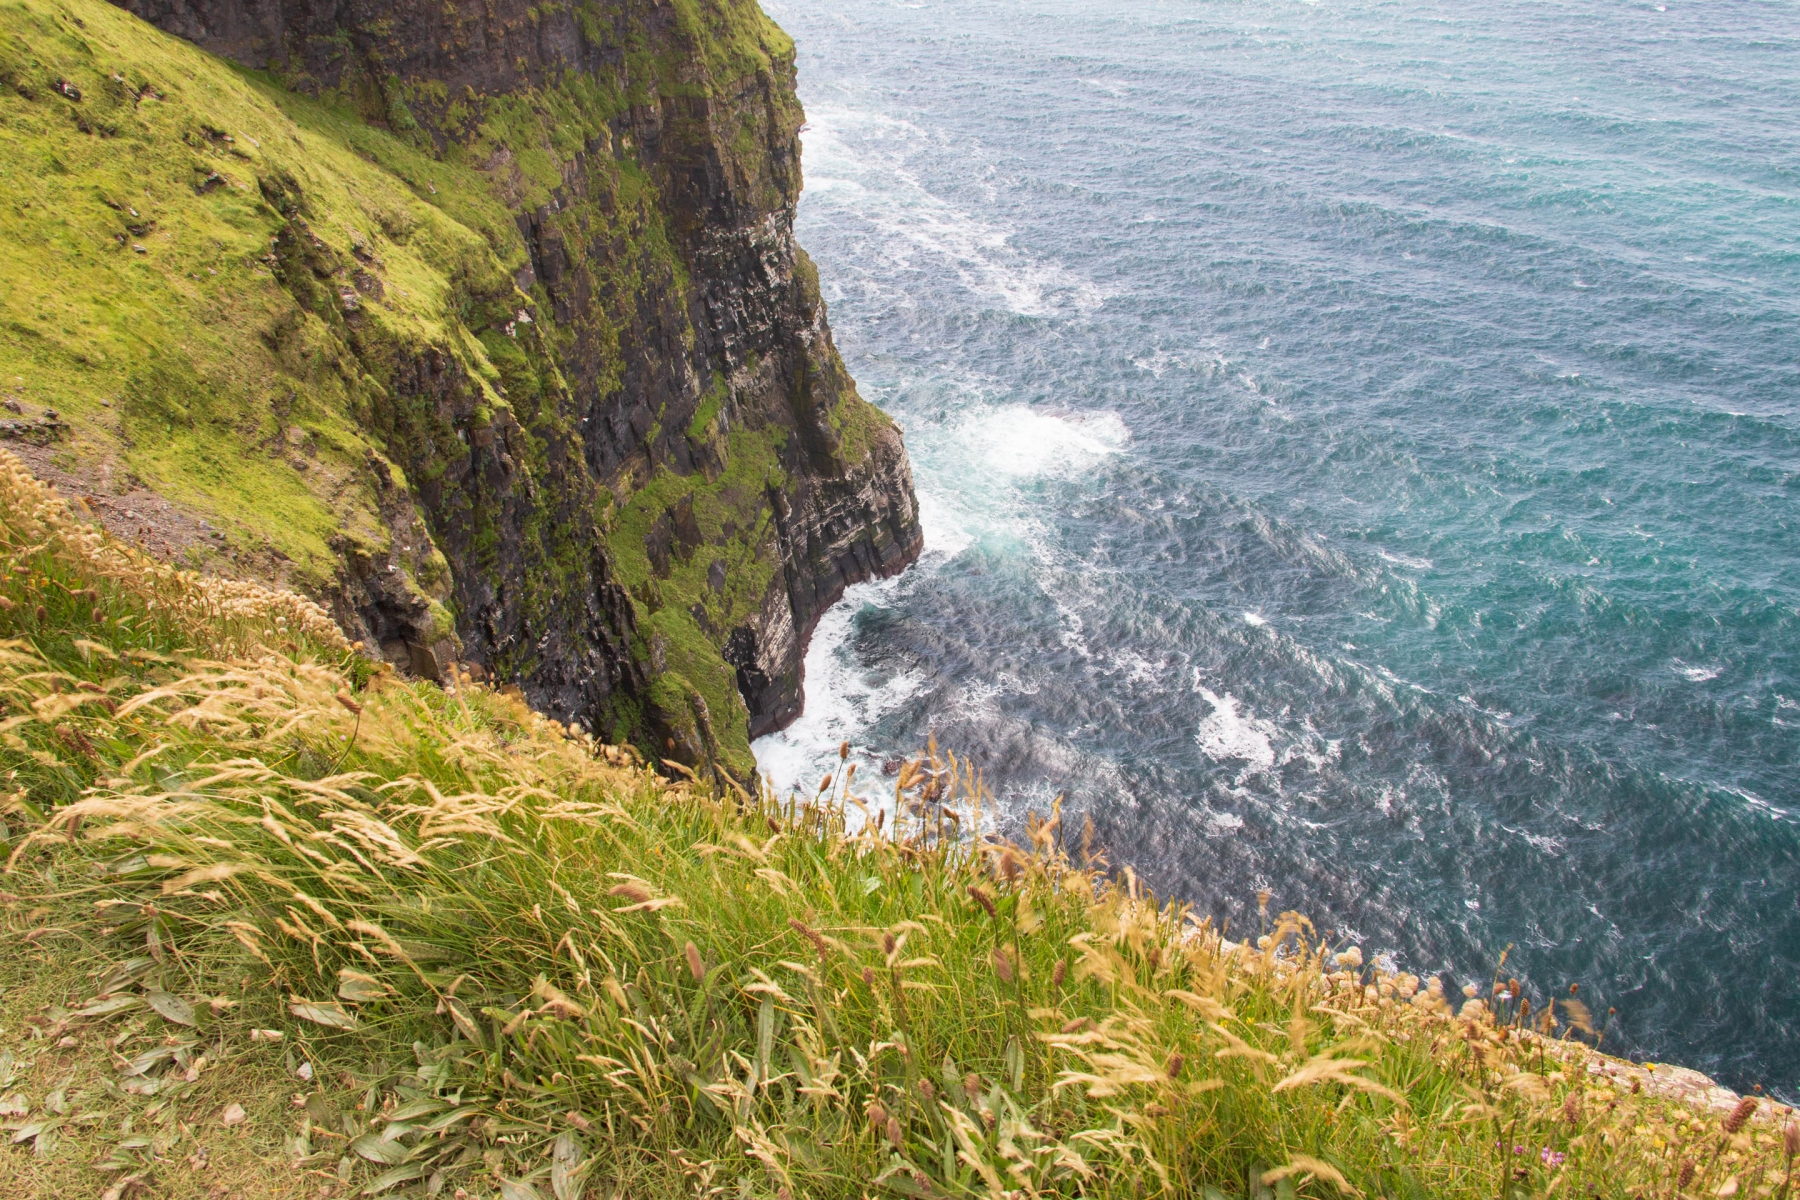 Just don't get too close to the edge..It's quite windy for one and the cliff edge can be rather clumsy.